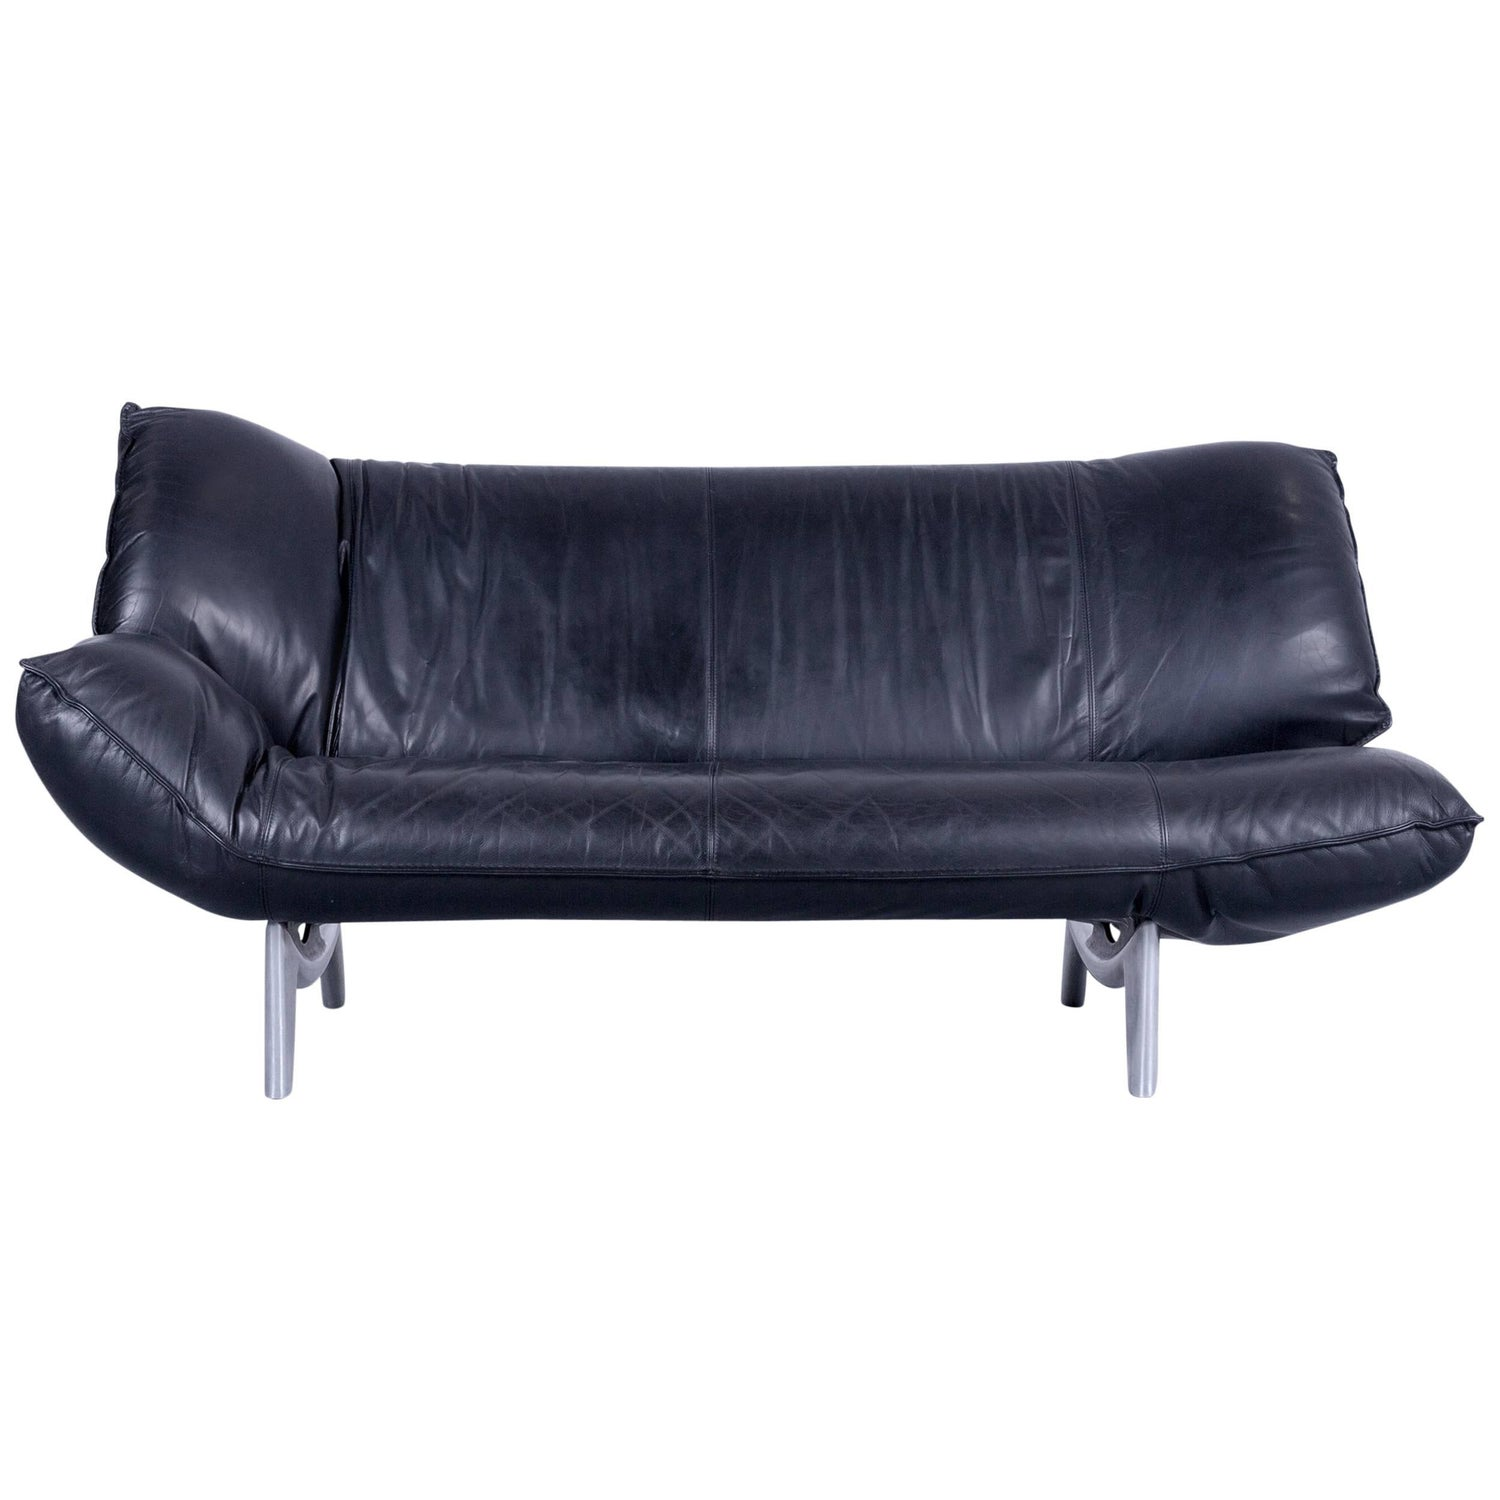 Leolux Tango Designer Leather Sofa Set Black Two Seat Couch